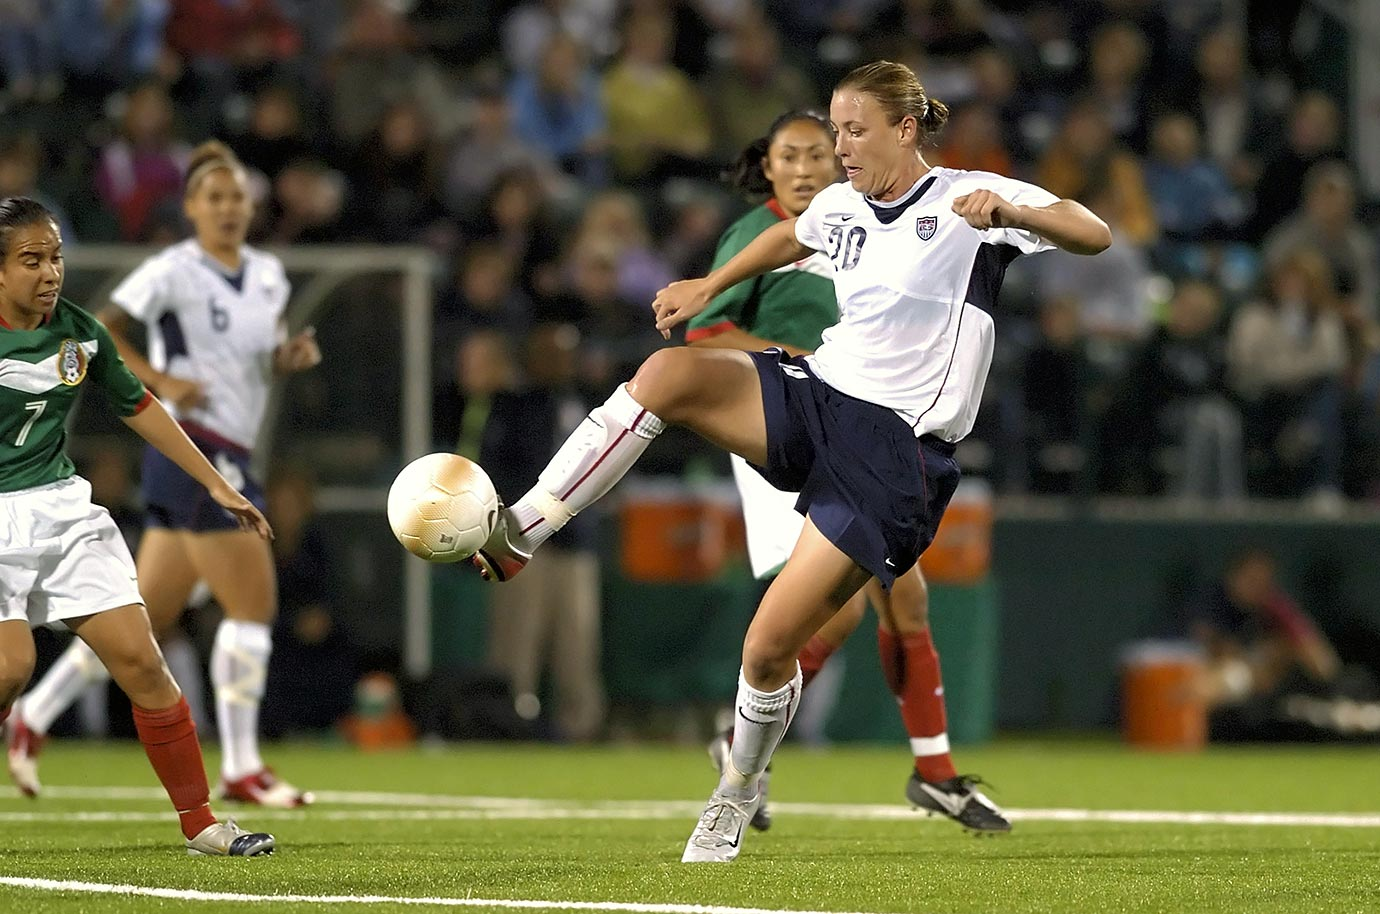 Sept. 13, 2006 — USA vs. Mexico